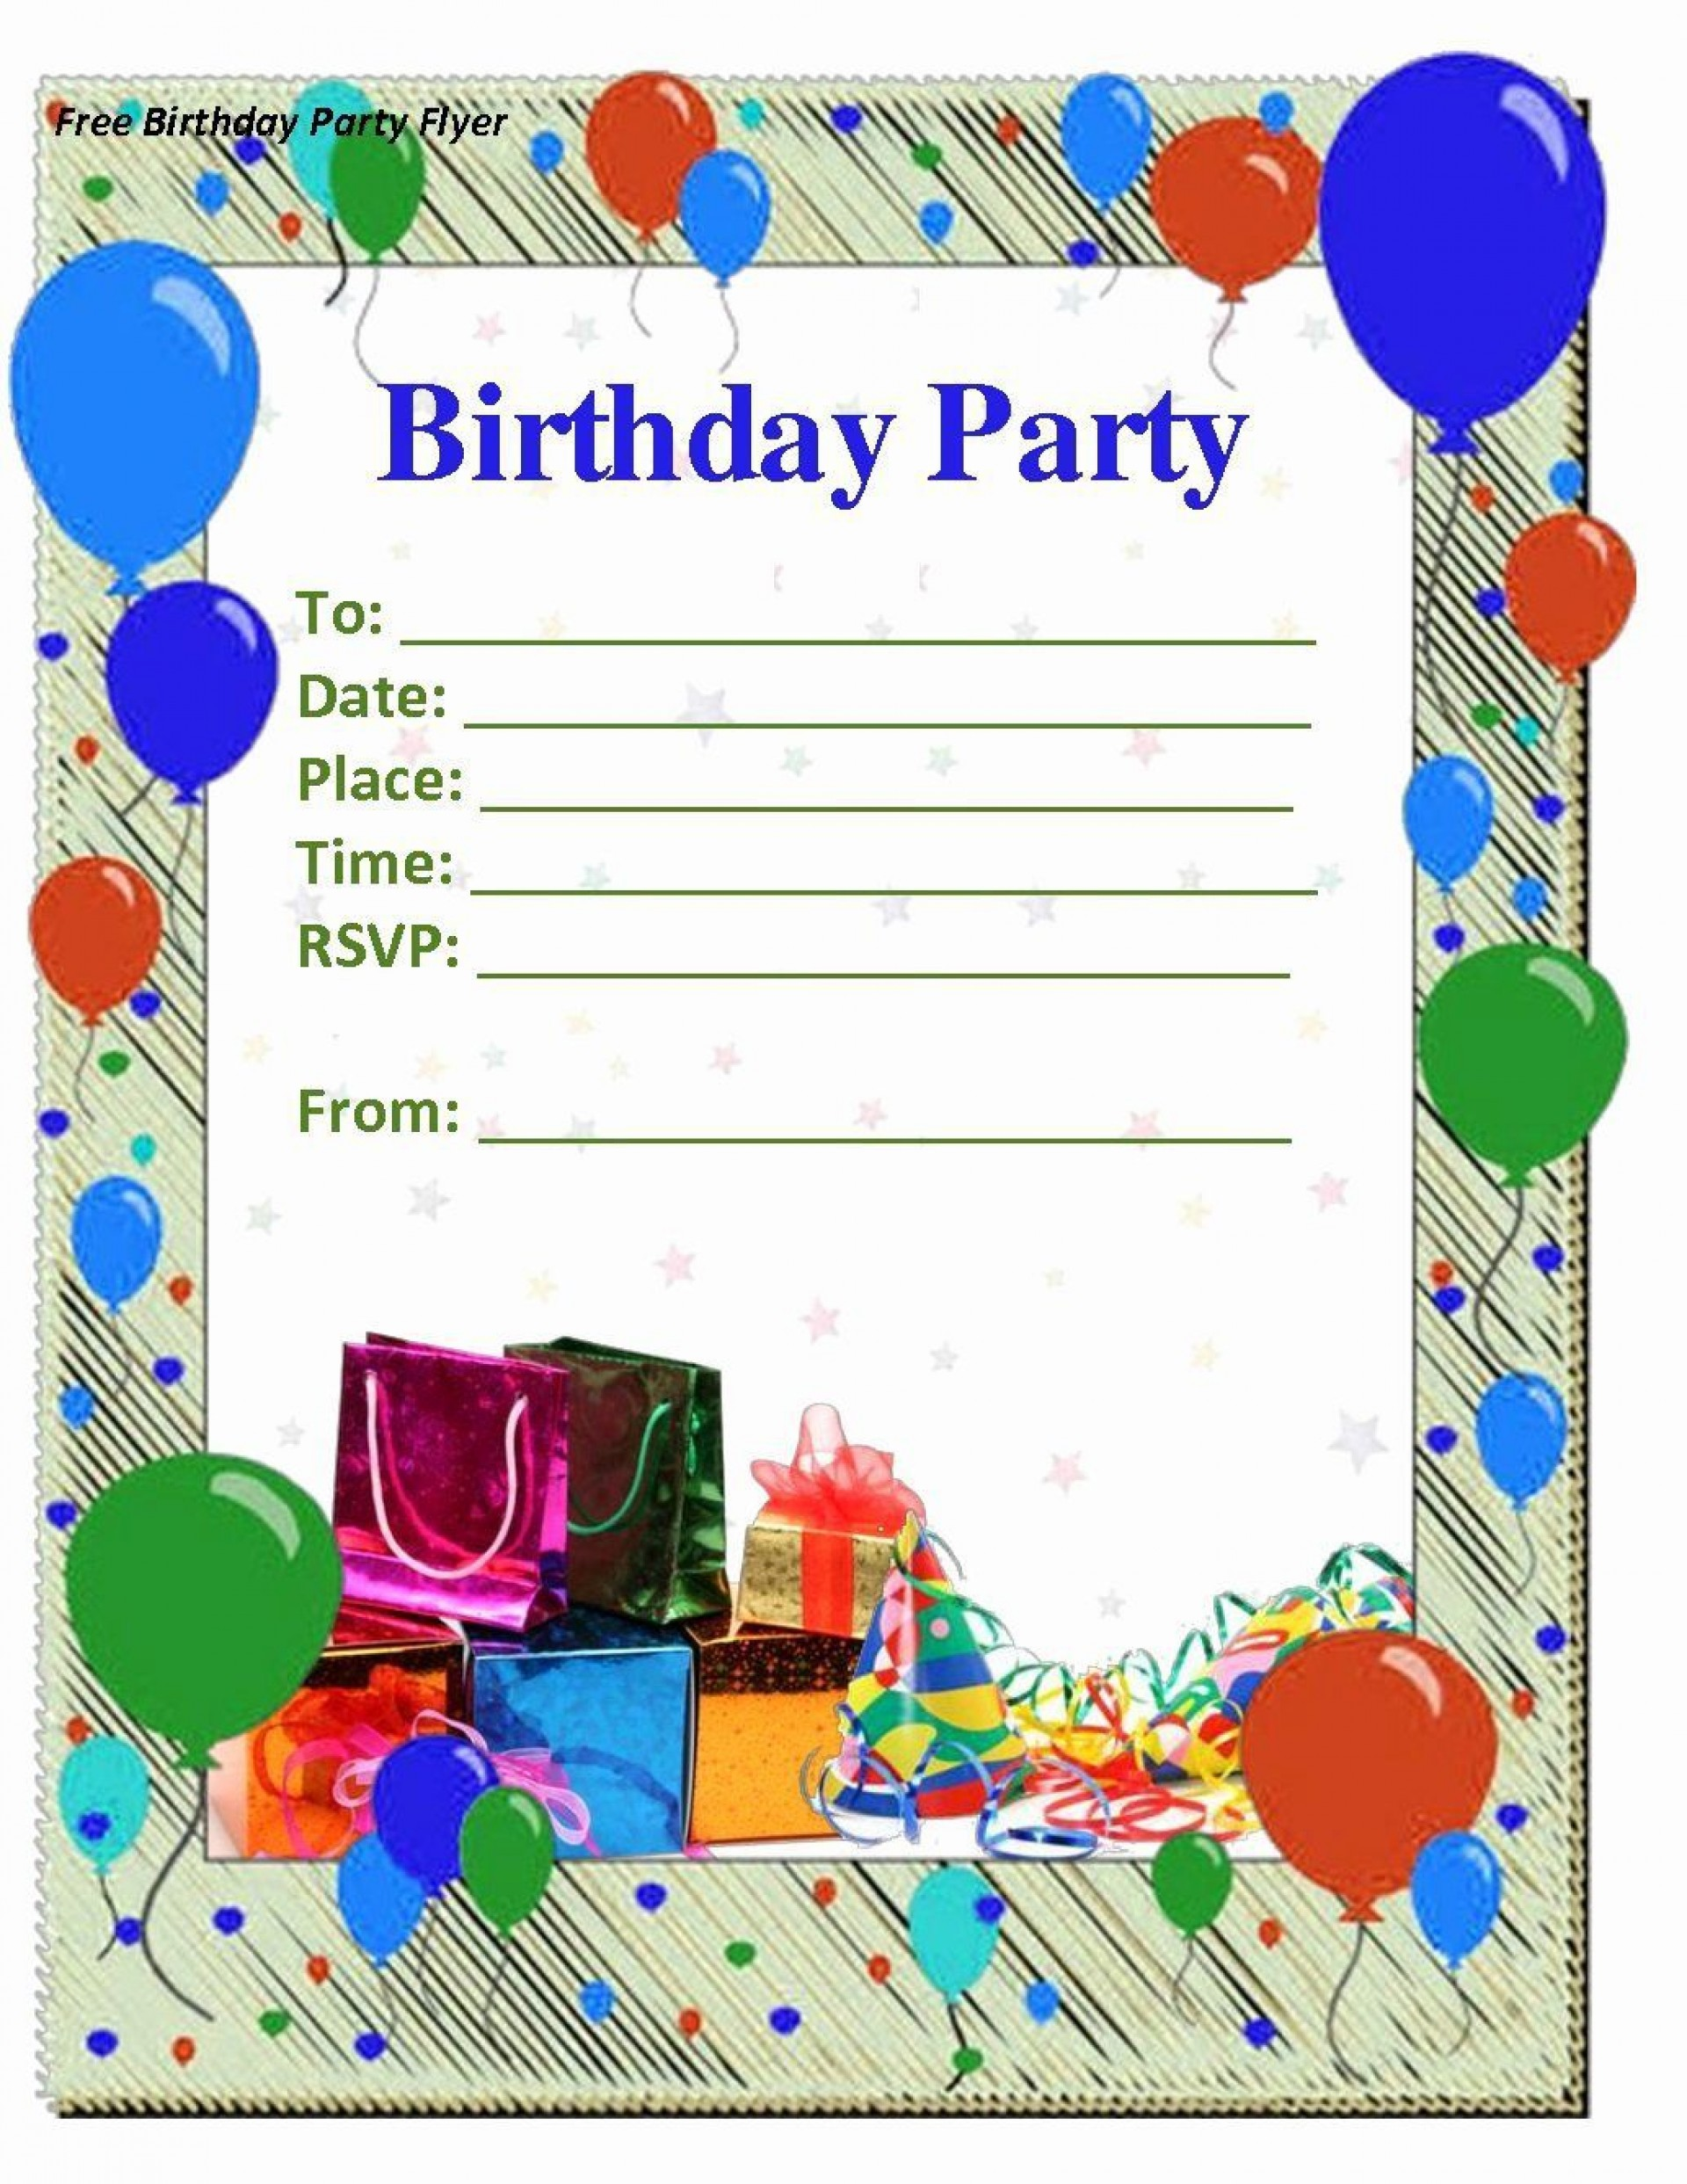 005 Archaicawful Microsoft Word Birthday Invitation Template Idea  60th 70th Halloween1920